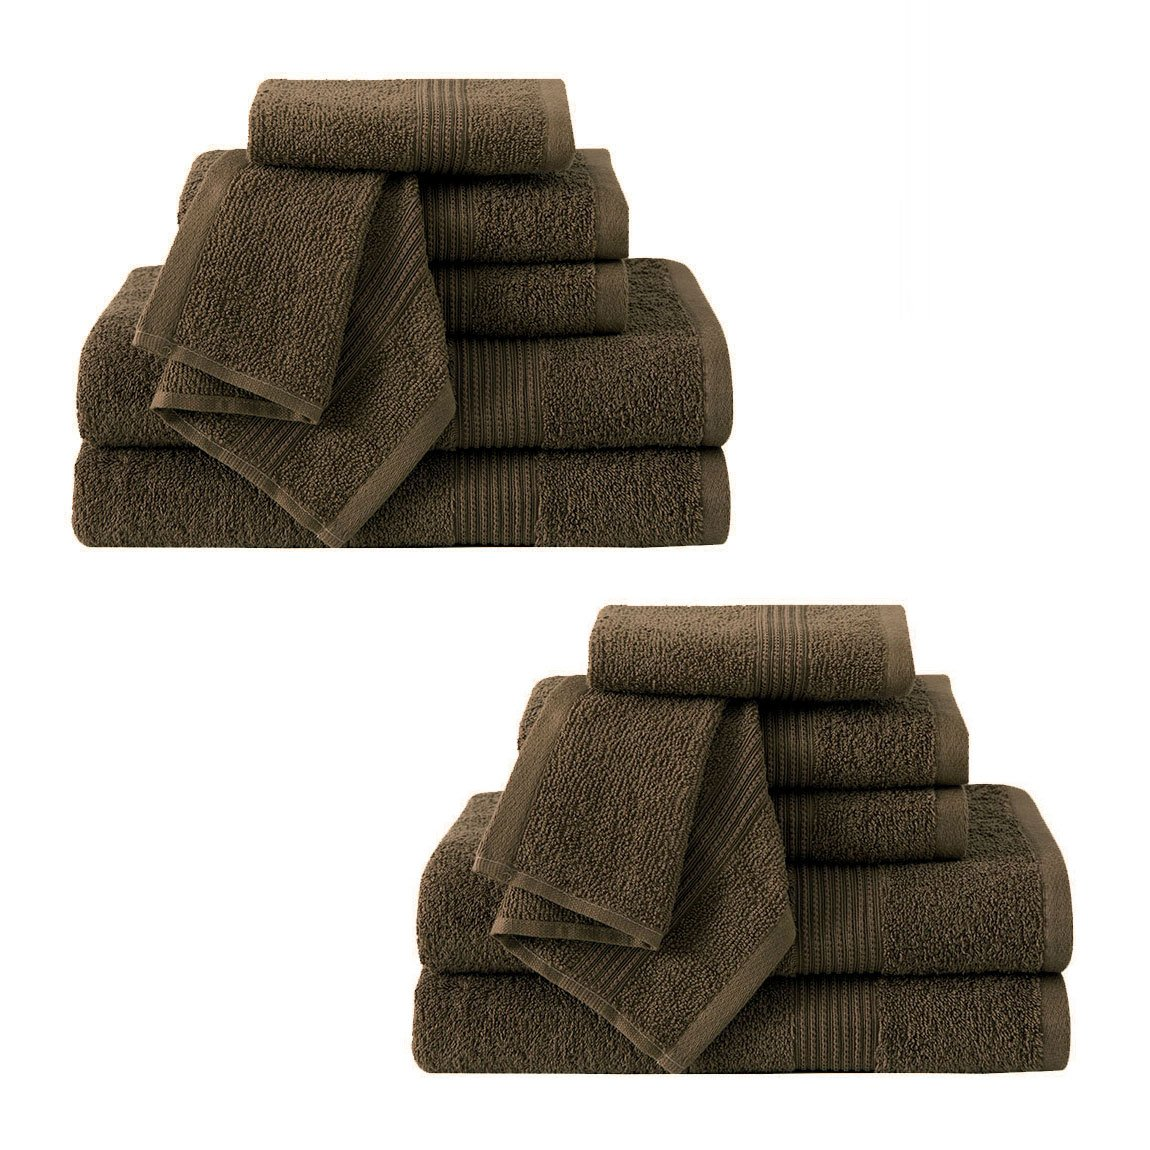 Ribbed Luxury Bath Towel 6 Piece Set 100% Cotton, Navy Blue (2 Bath Towels 54 x 27, 2 Hand Towels 28 x 16 and 2 Wash Cloths 13 x 13) HowPlumb LUXURY-TOWEL-SETS